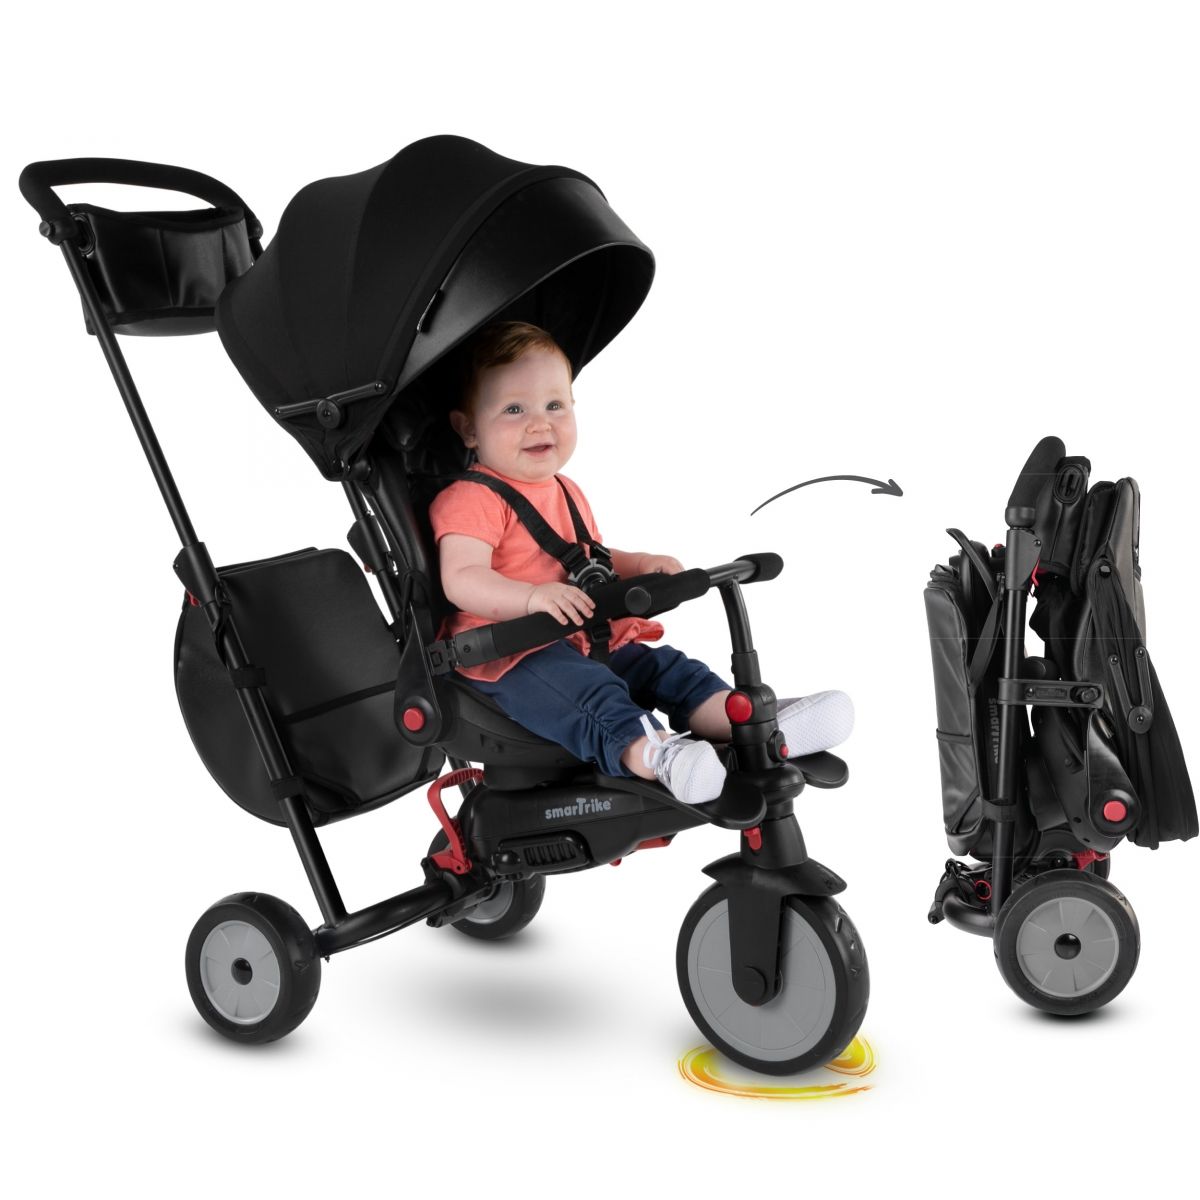 Picture of SmarTrike 8in1 Folding Baby Tricycle STR7-Black (NEW)